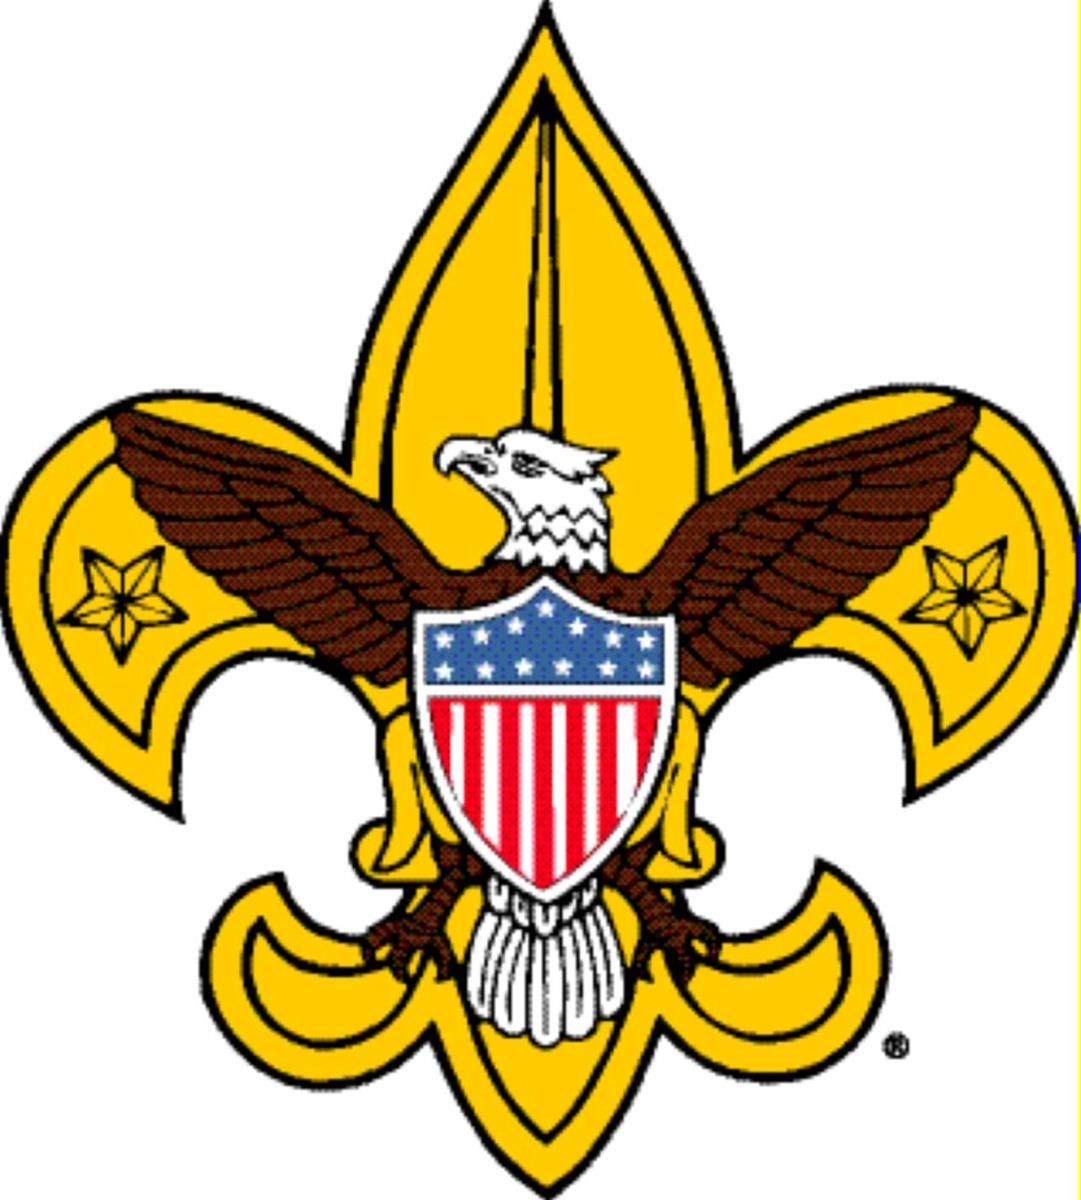 small resolution of boy scout fleur de lis clip art clipart best clipart best